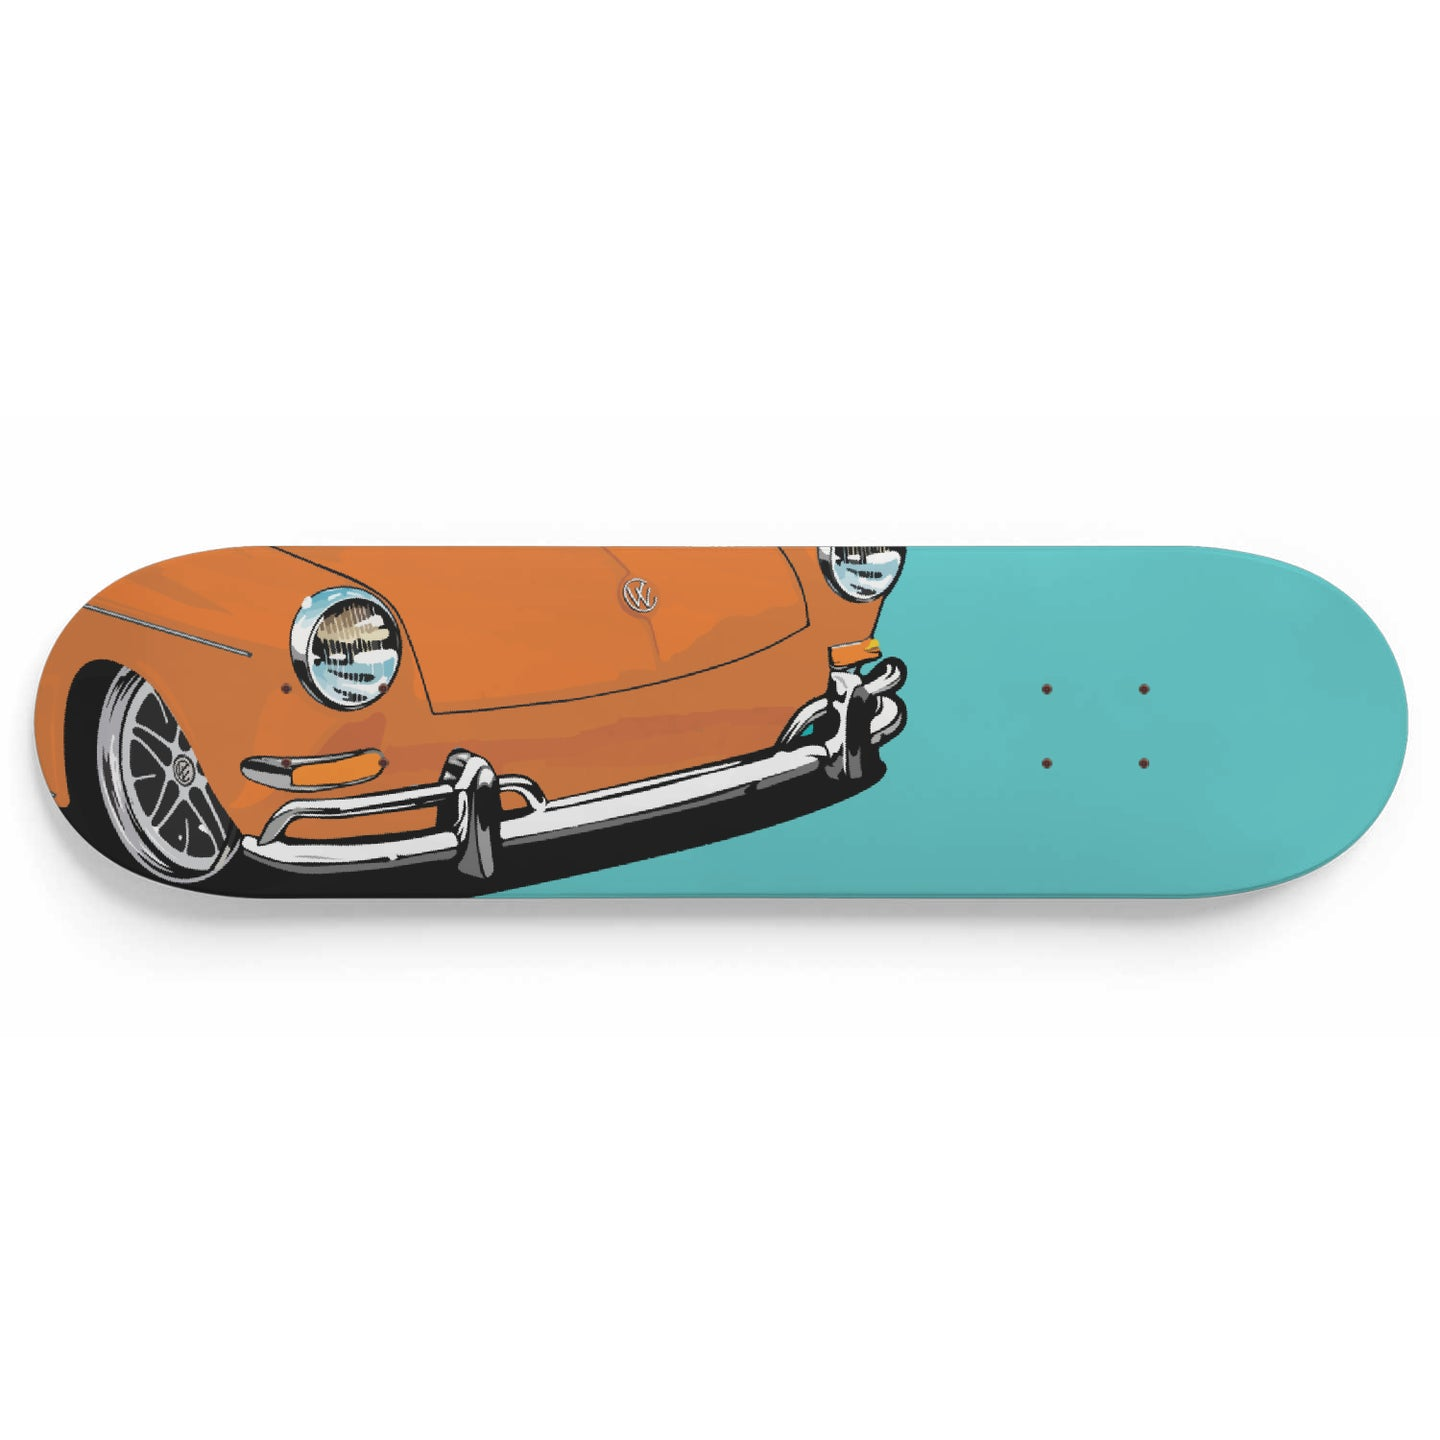 Vintage Squareback Skate Deck Orange/Sea Foam, - Aircooled VW - Vintage Vdub